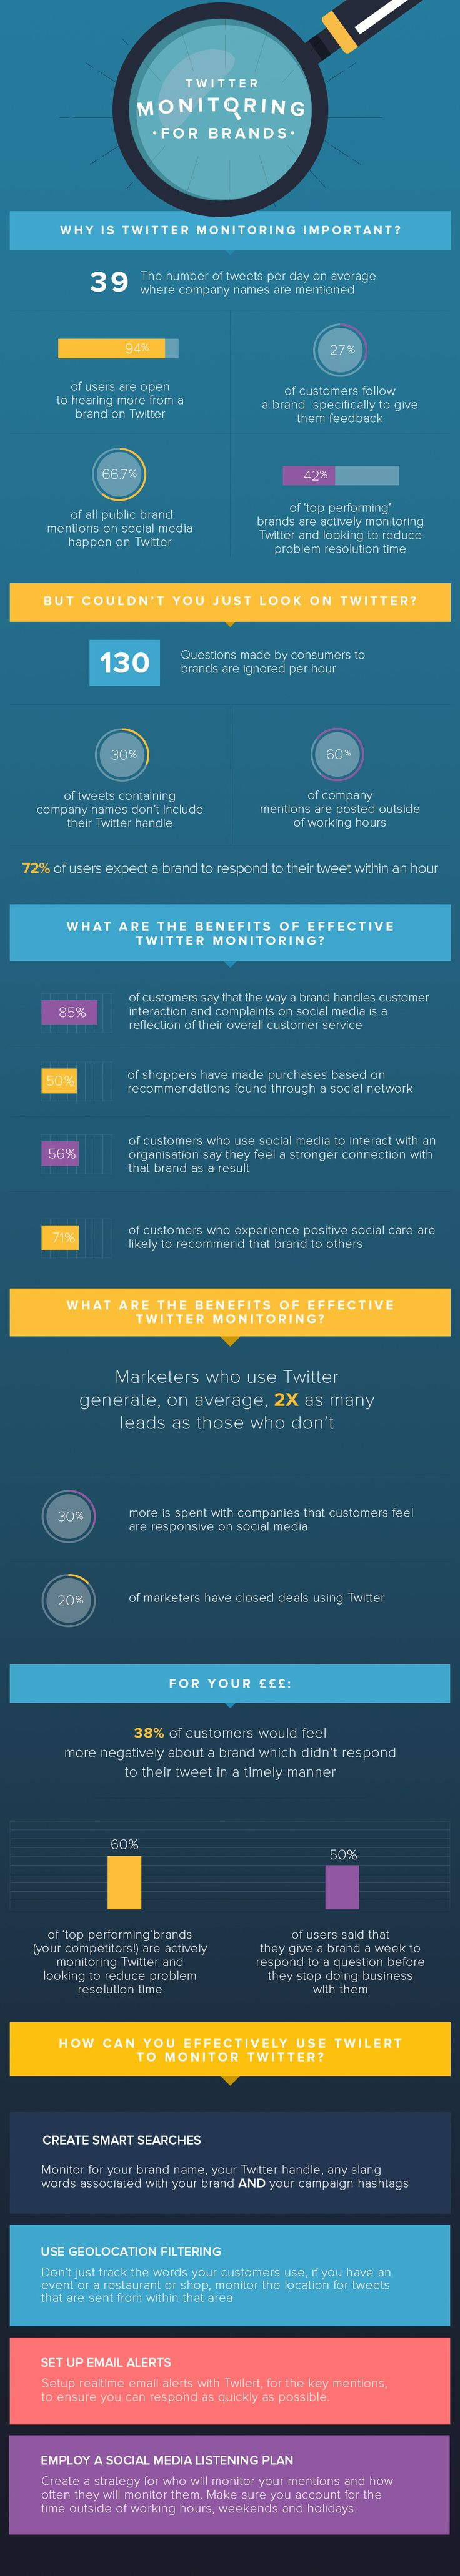 The Importance of Twitter Monitoring for Brands - #Twitter #infographic #socialmedia